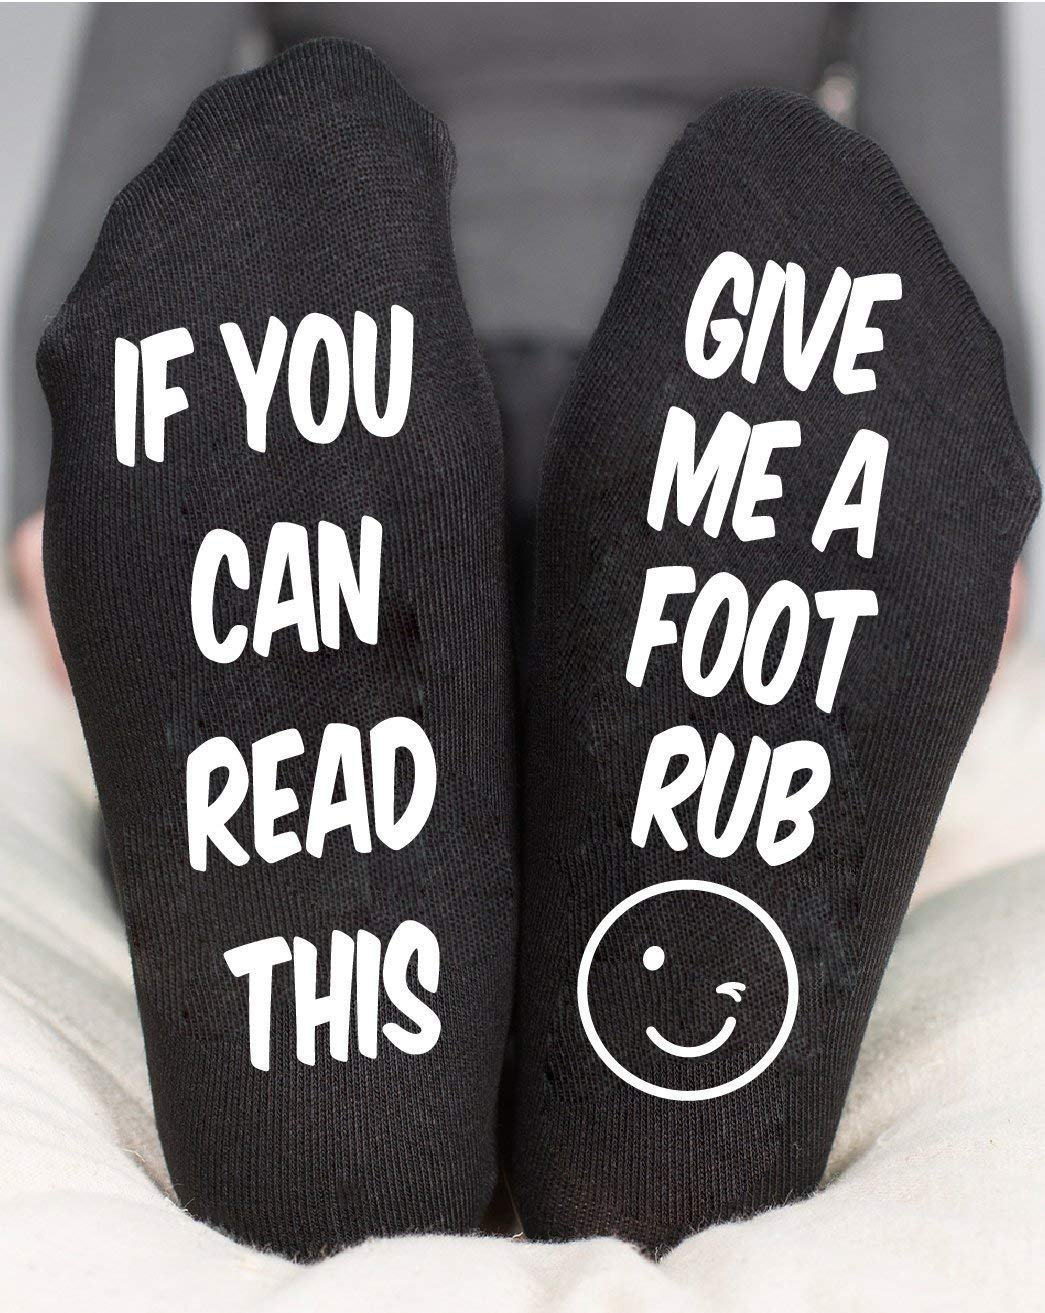 Foot Rub Socks Funny Maternity Gift If You Can Read This